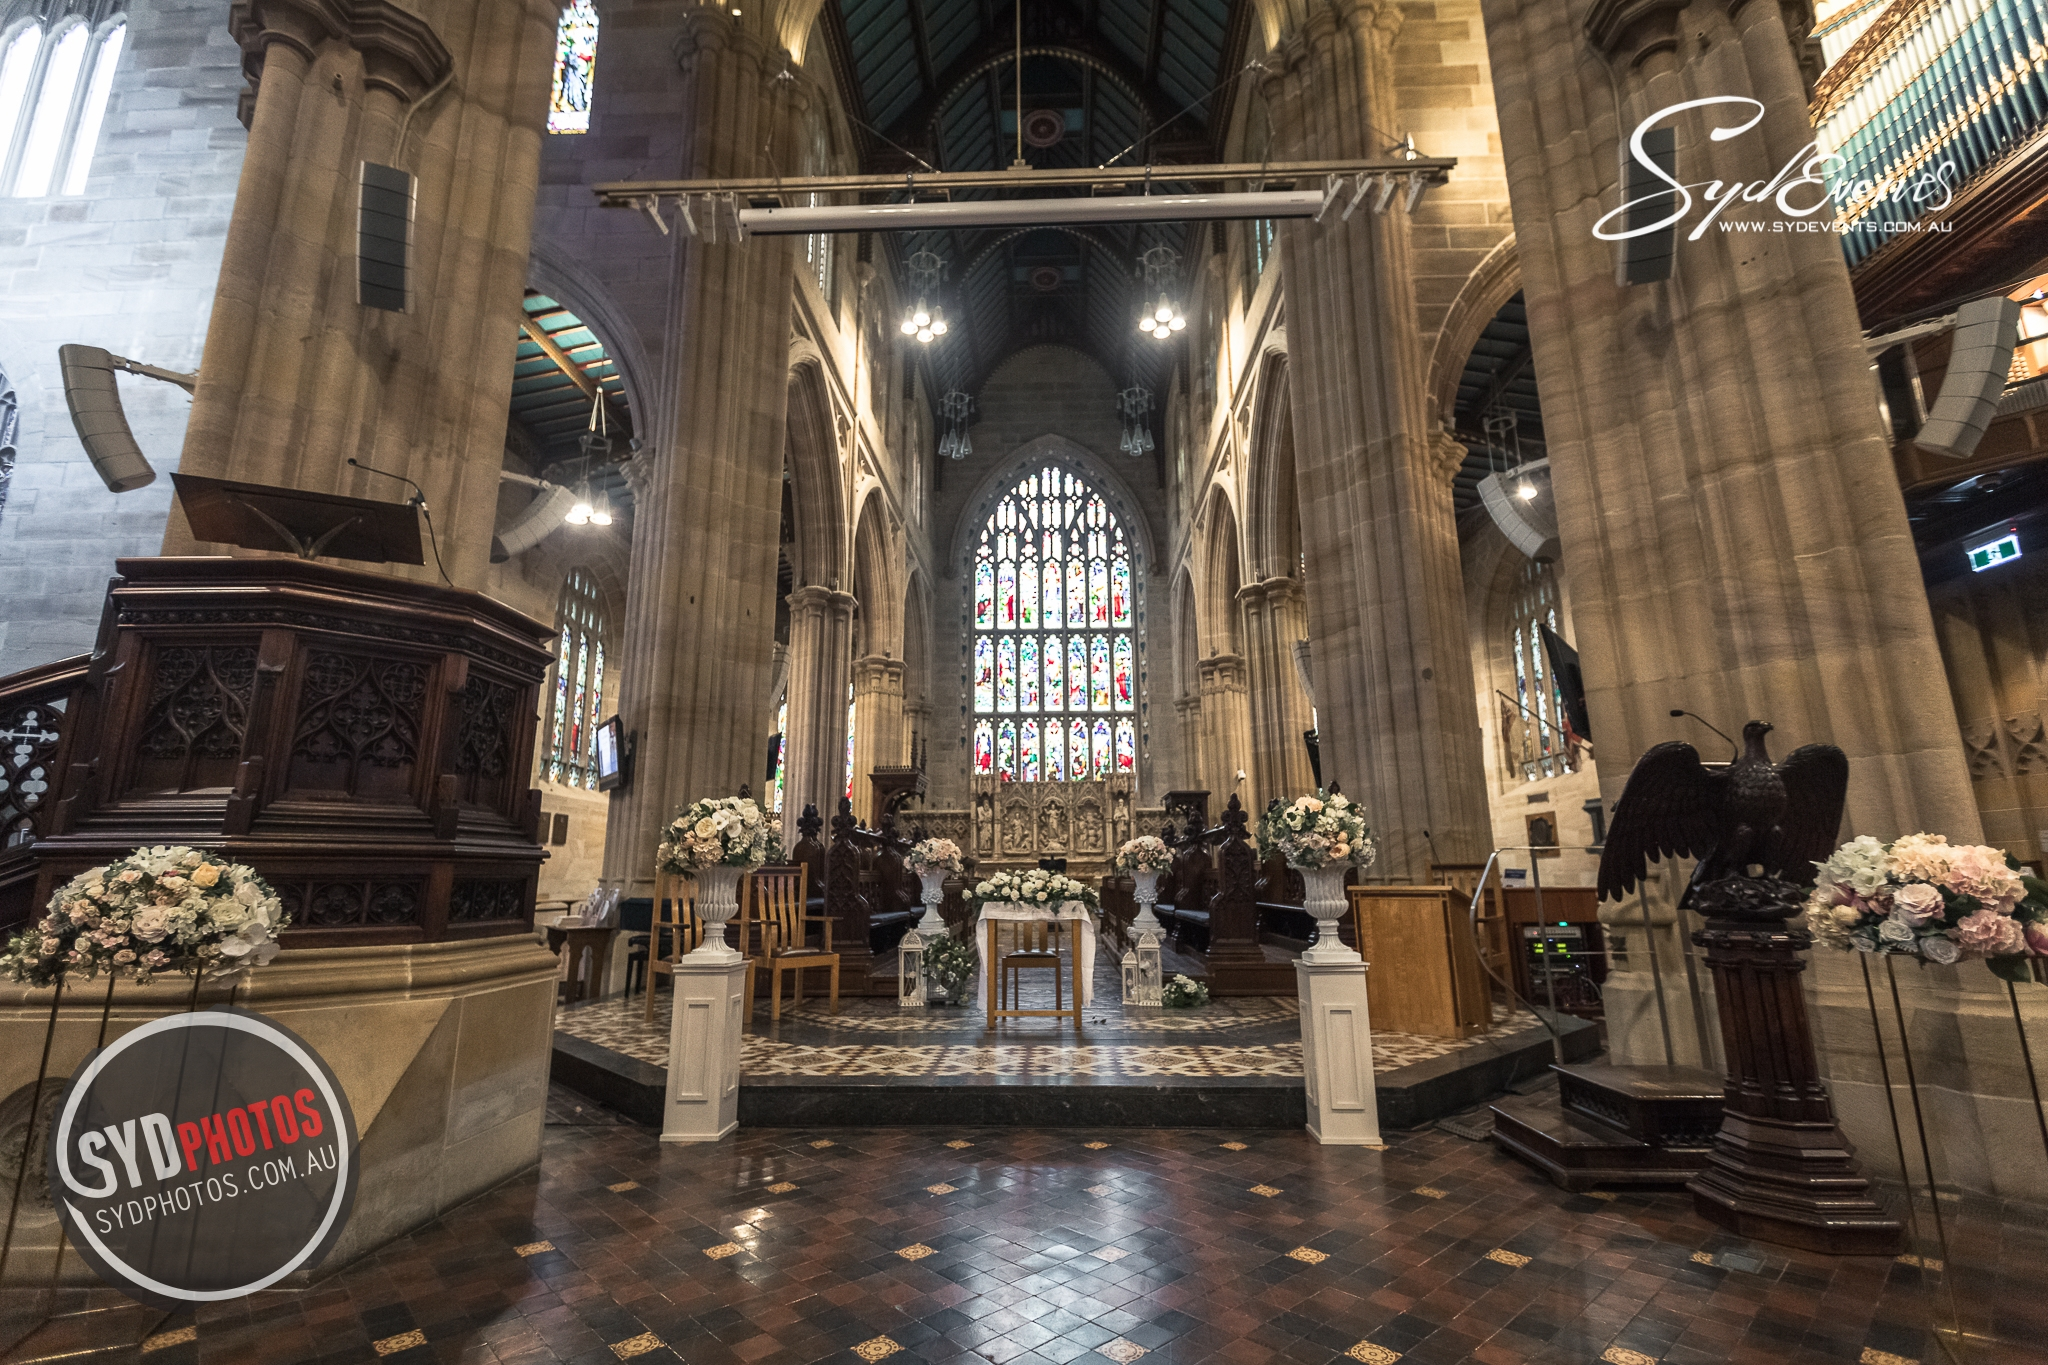 ID-110838-20190811-St Andrew's Cathedral悉尼教堂婚礼